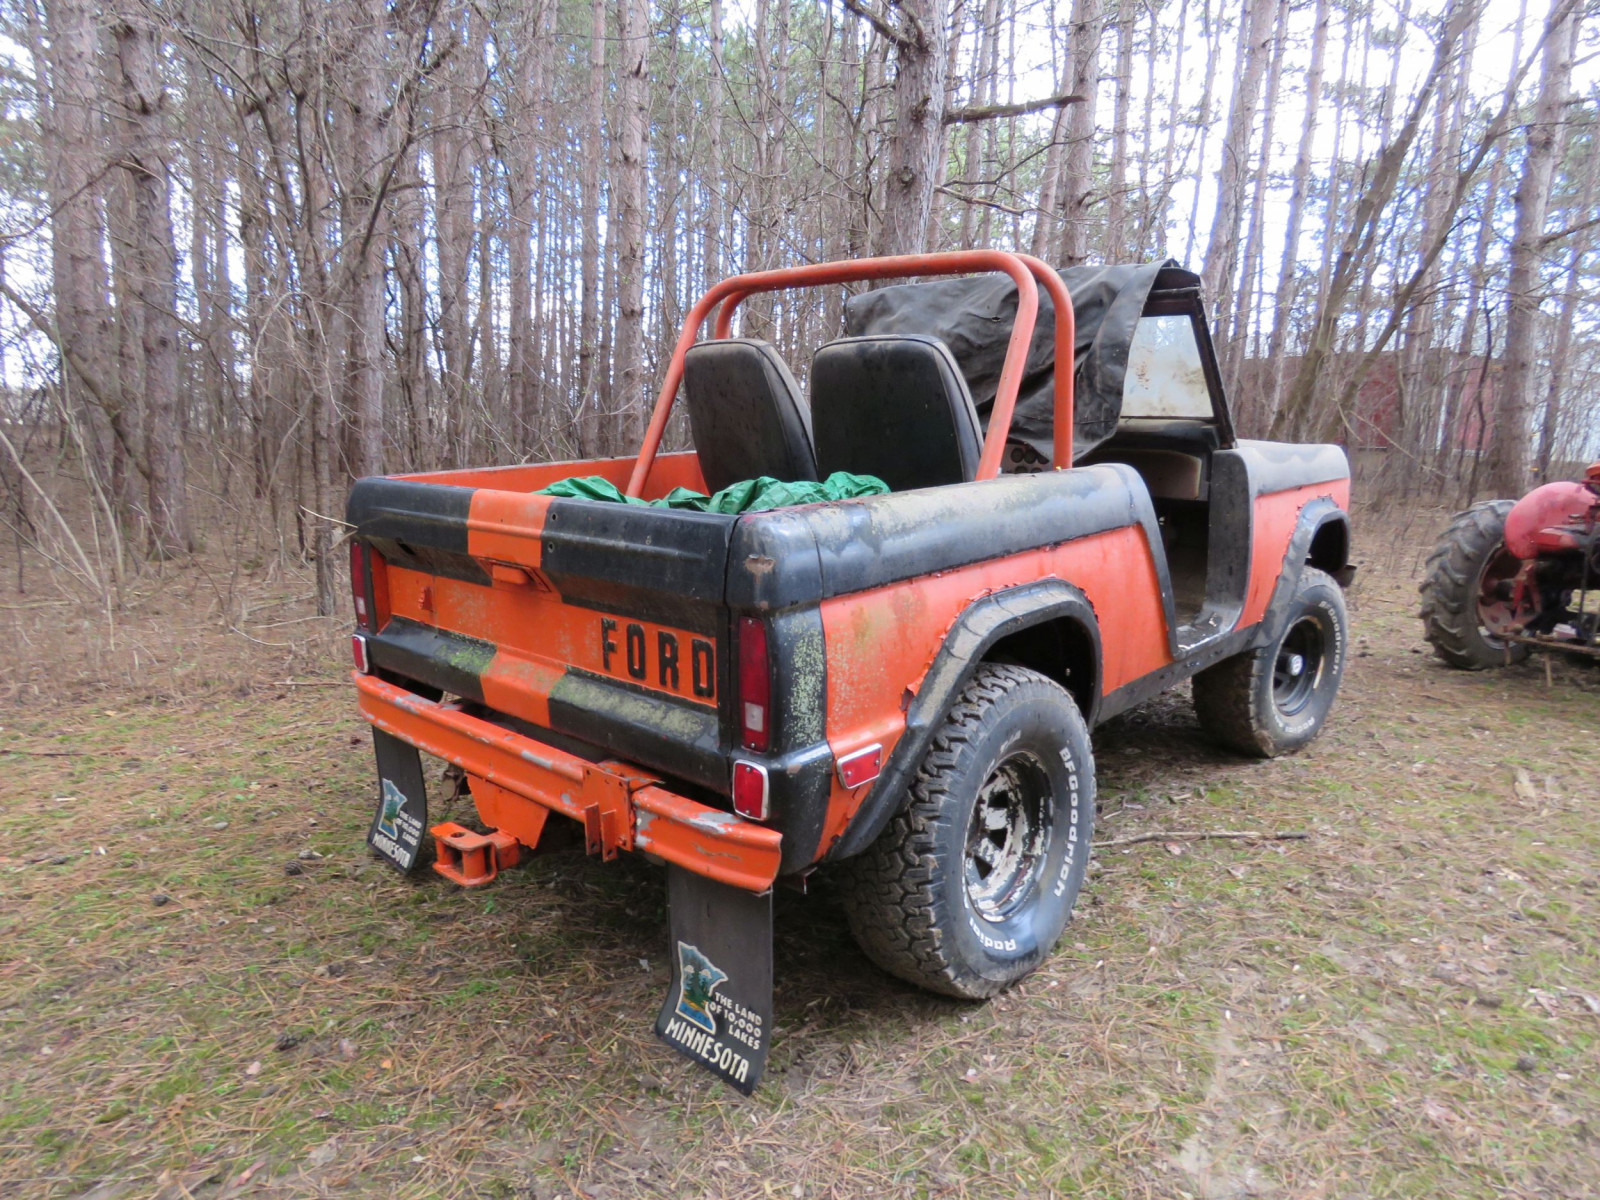 1969 Ford Bronco Project - Image 4